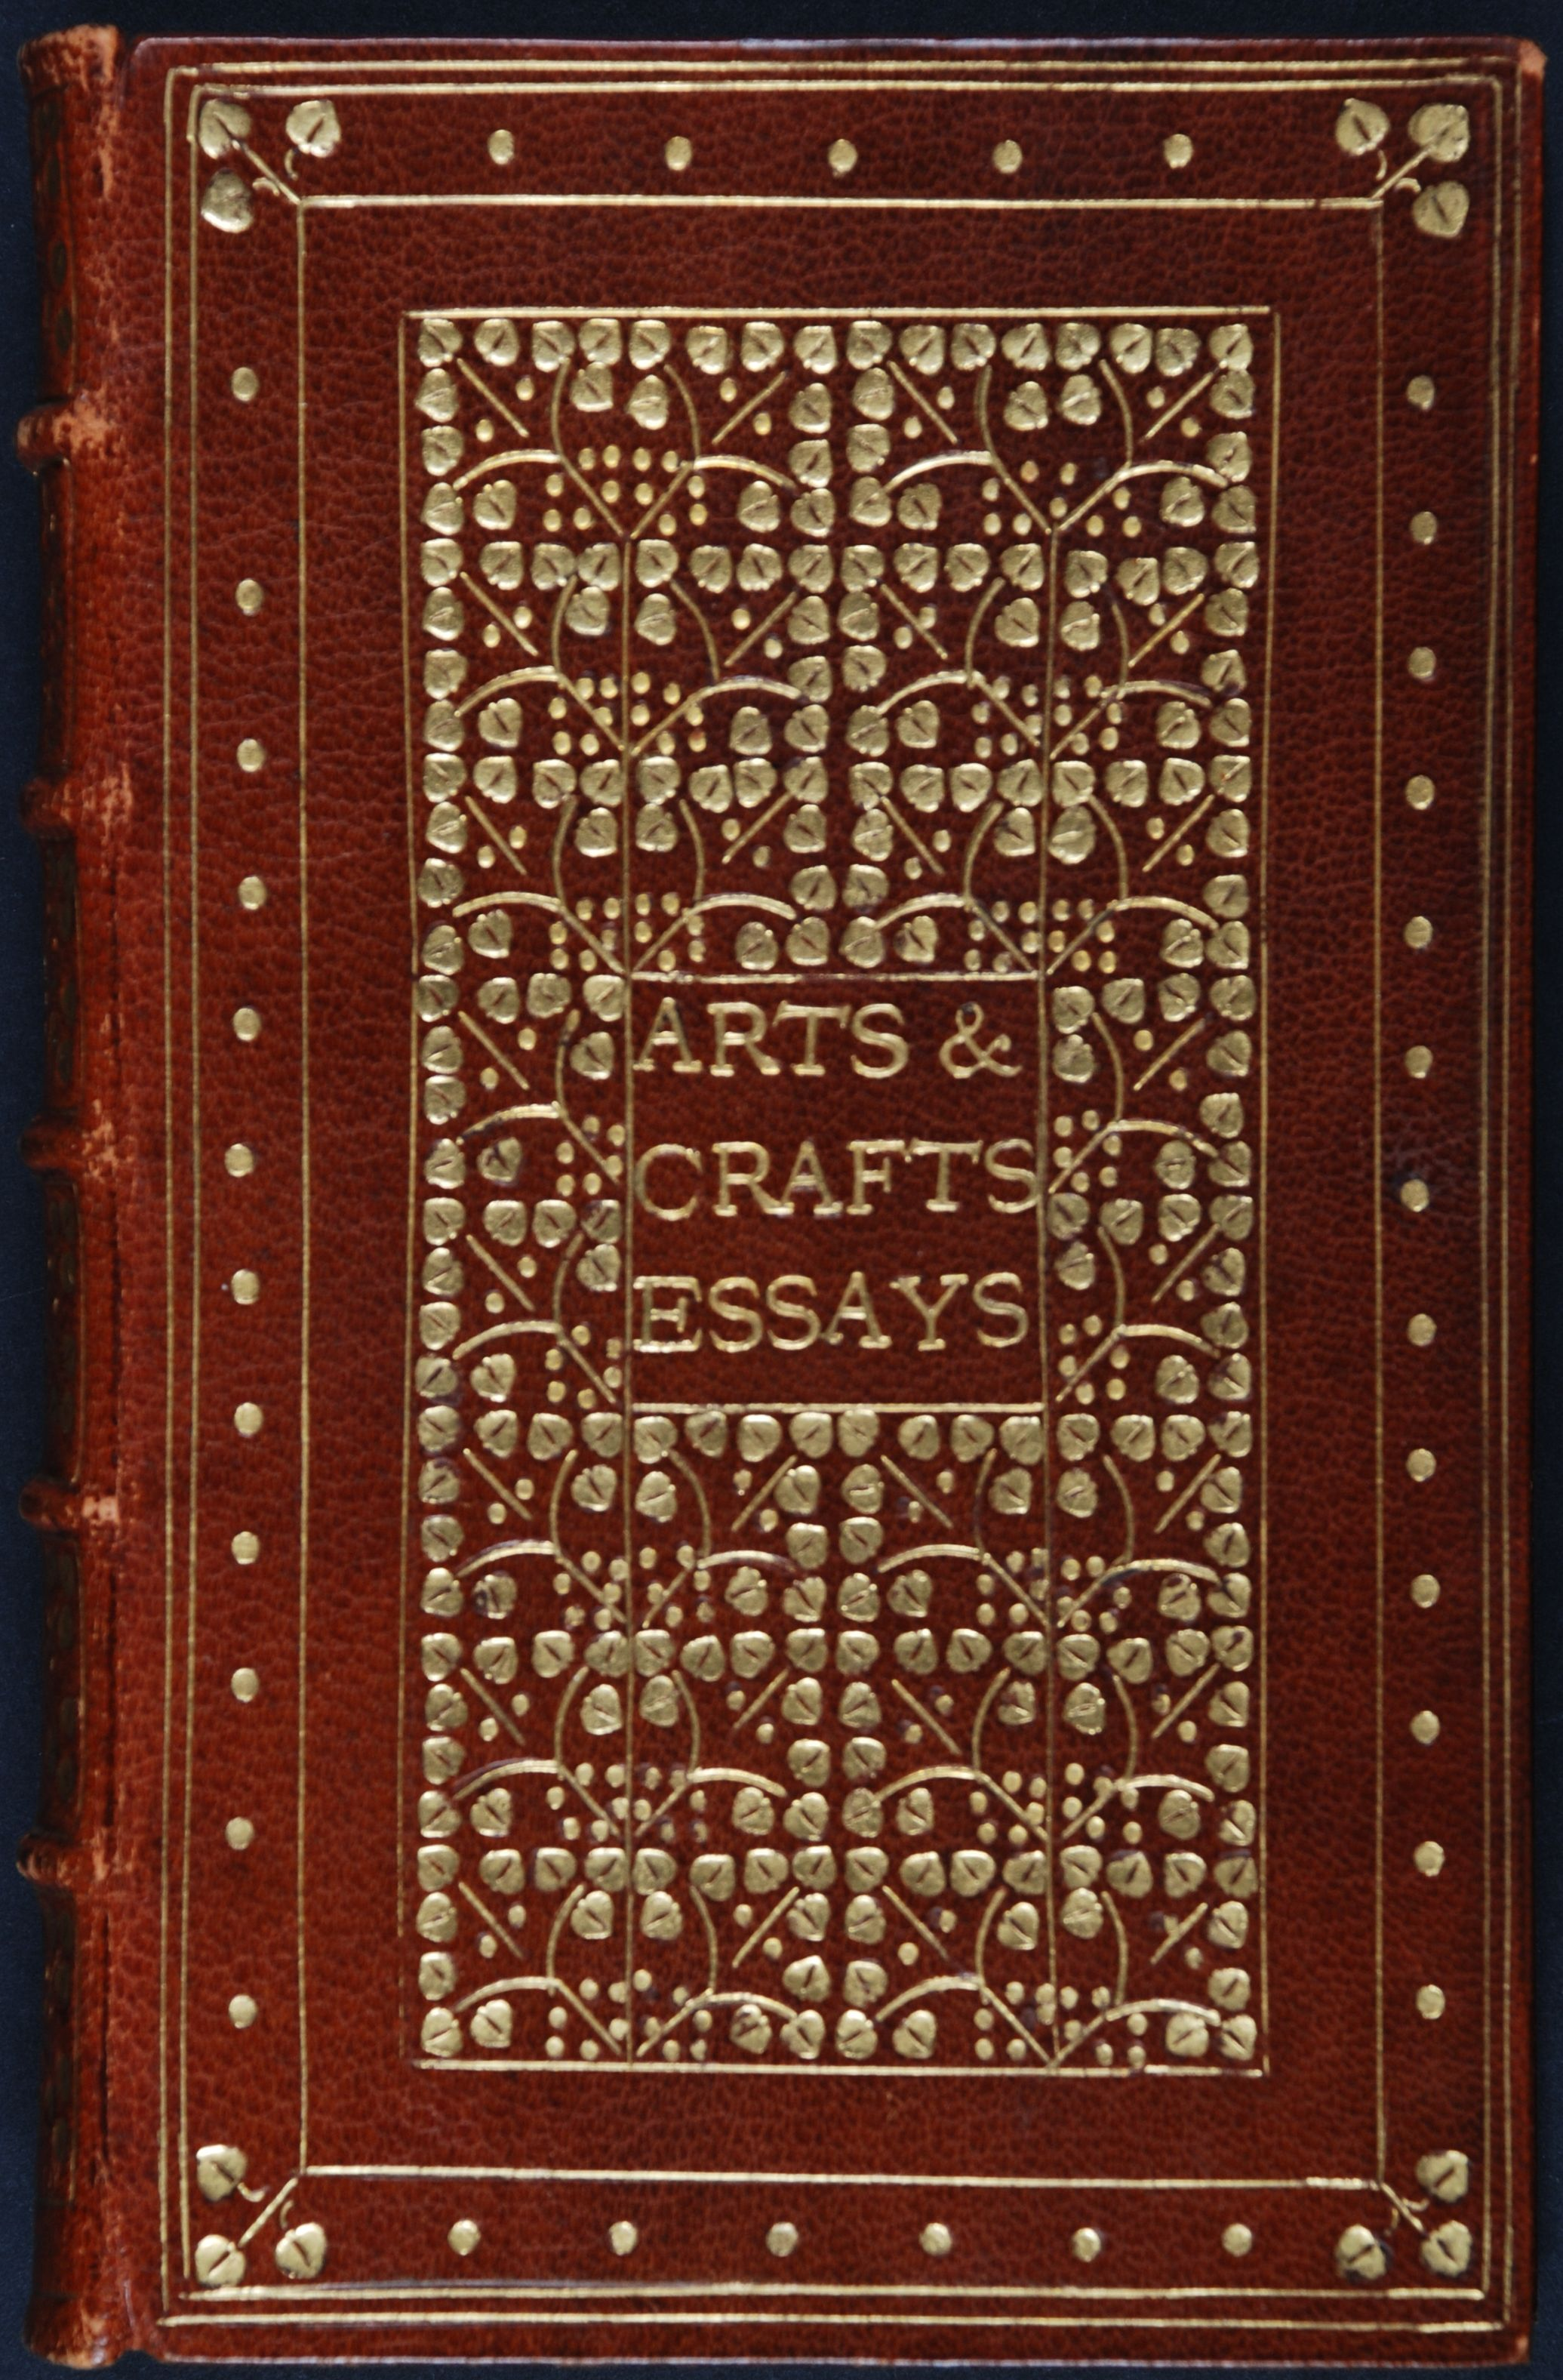 Arts and crafts essays: by members of the Arts and Crafts Exhibition Society. London: Longmans, Green, 1903.